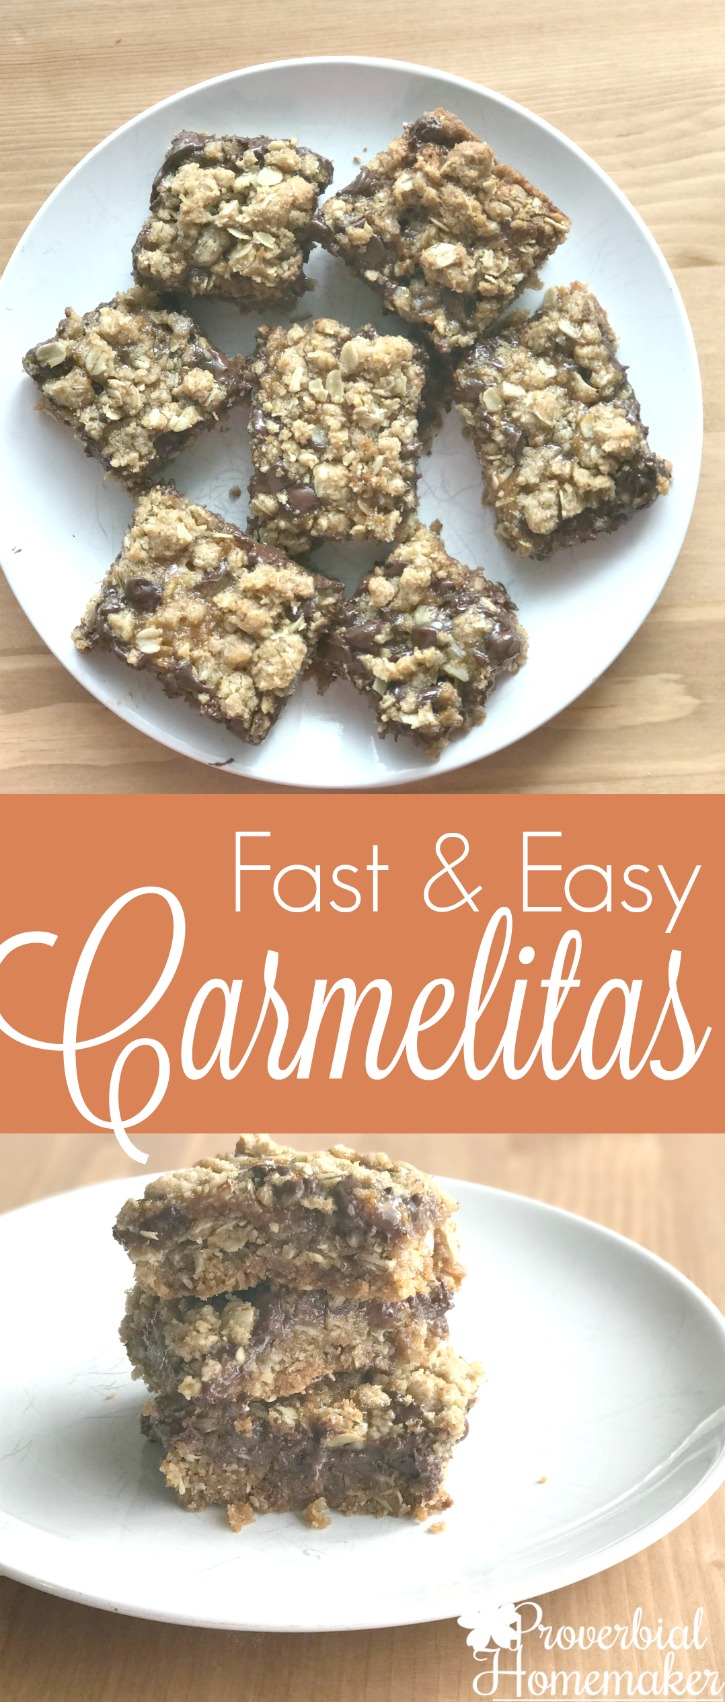 You'll LOVE this simple and easy Carmelitas recipe! It's a crowd-pleaser perfect for holidays or a sweet surprise.